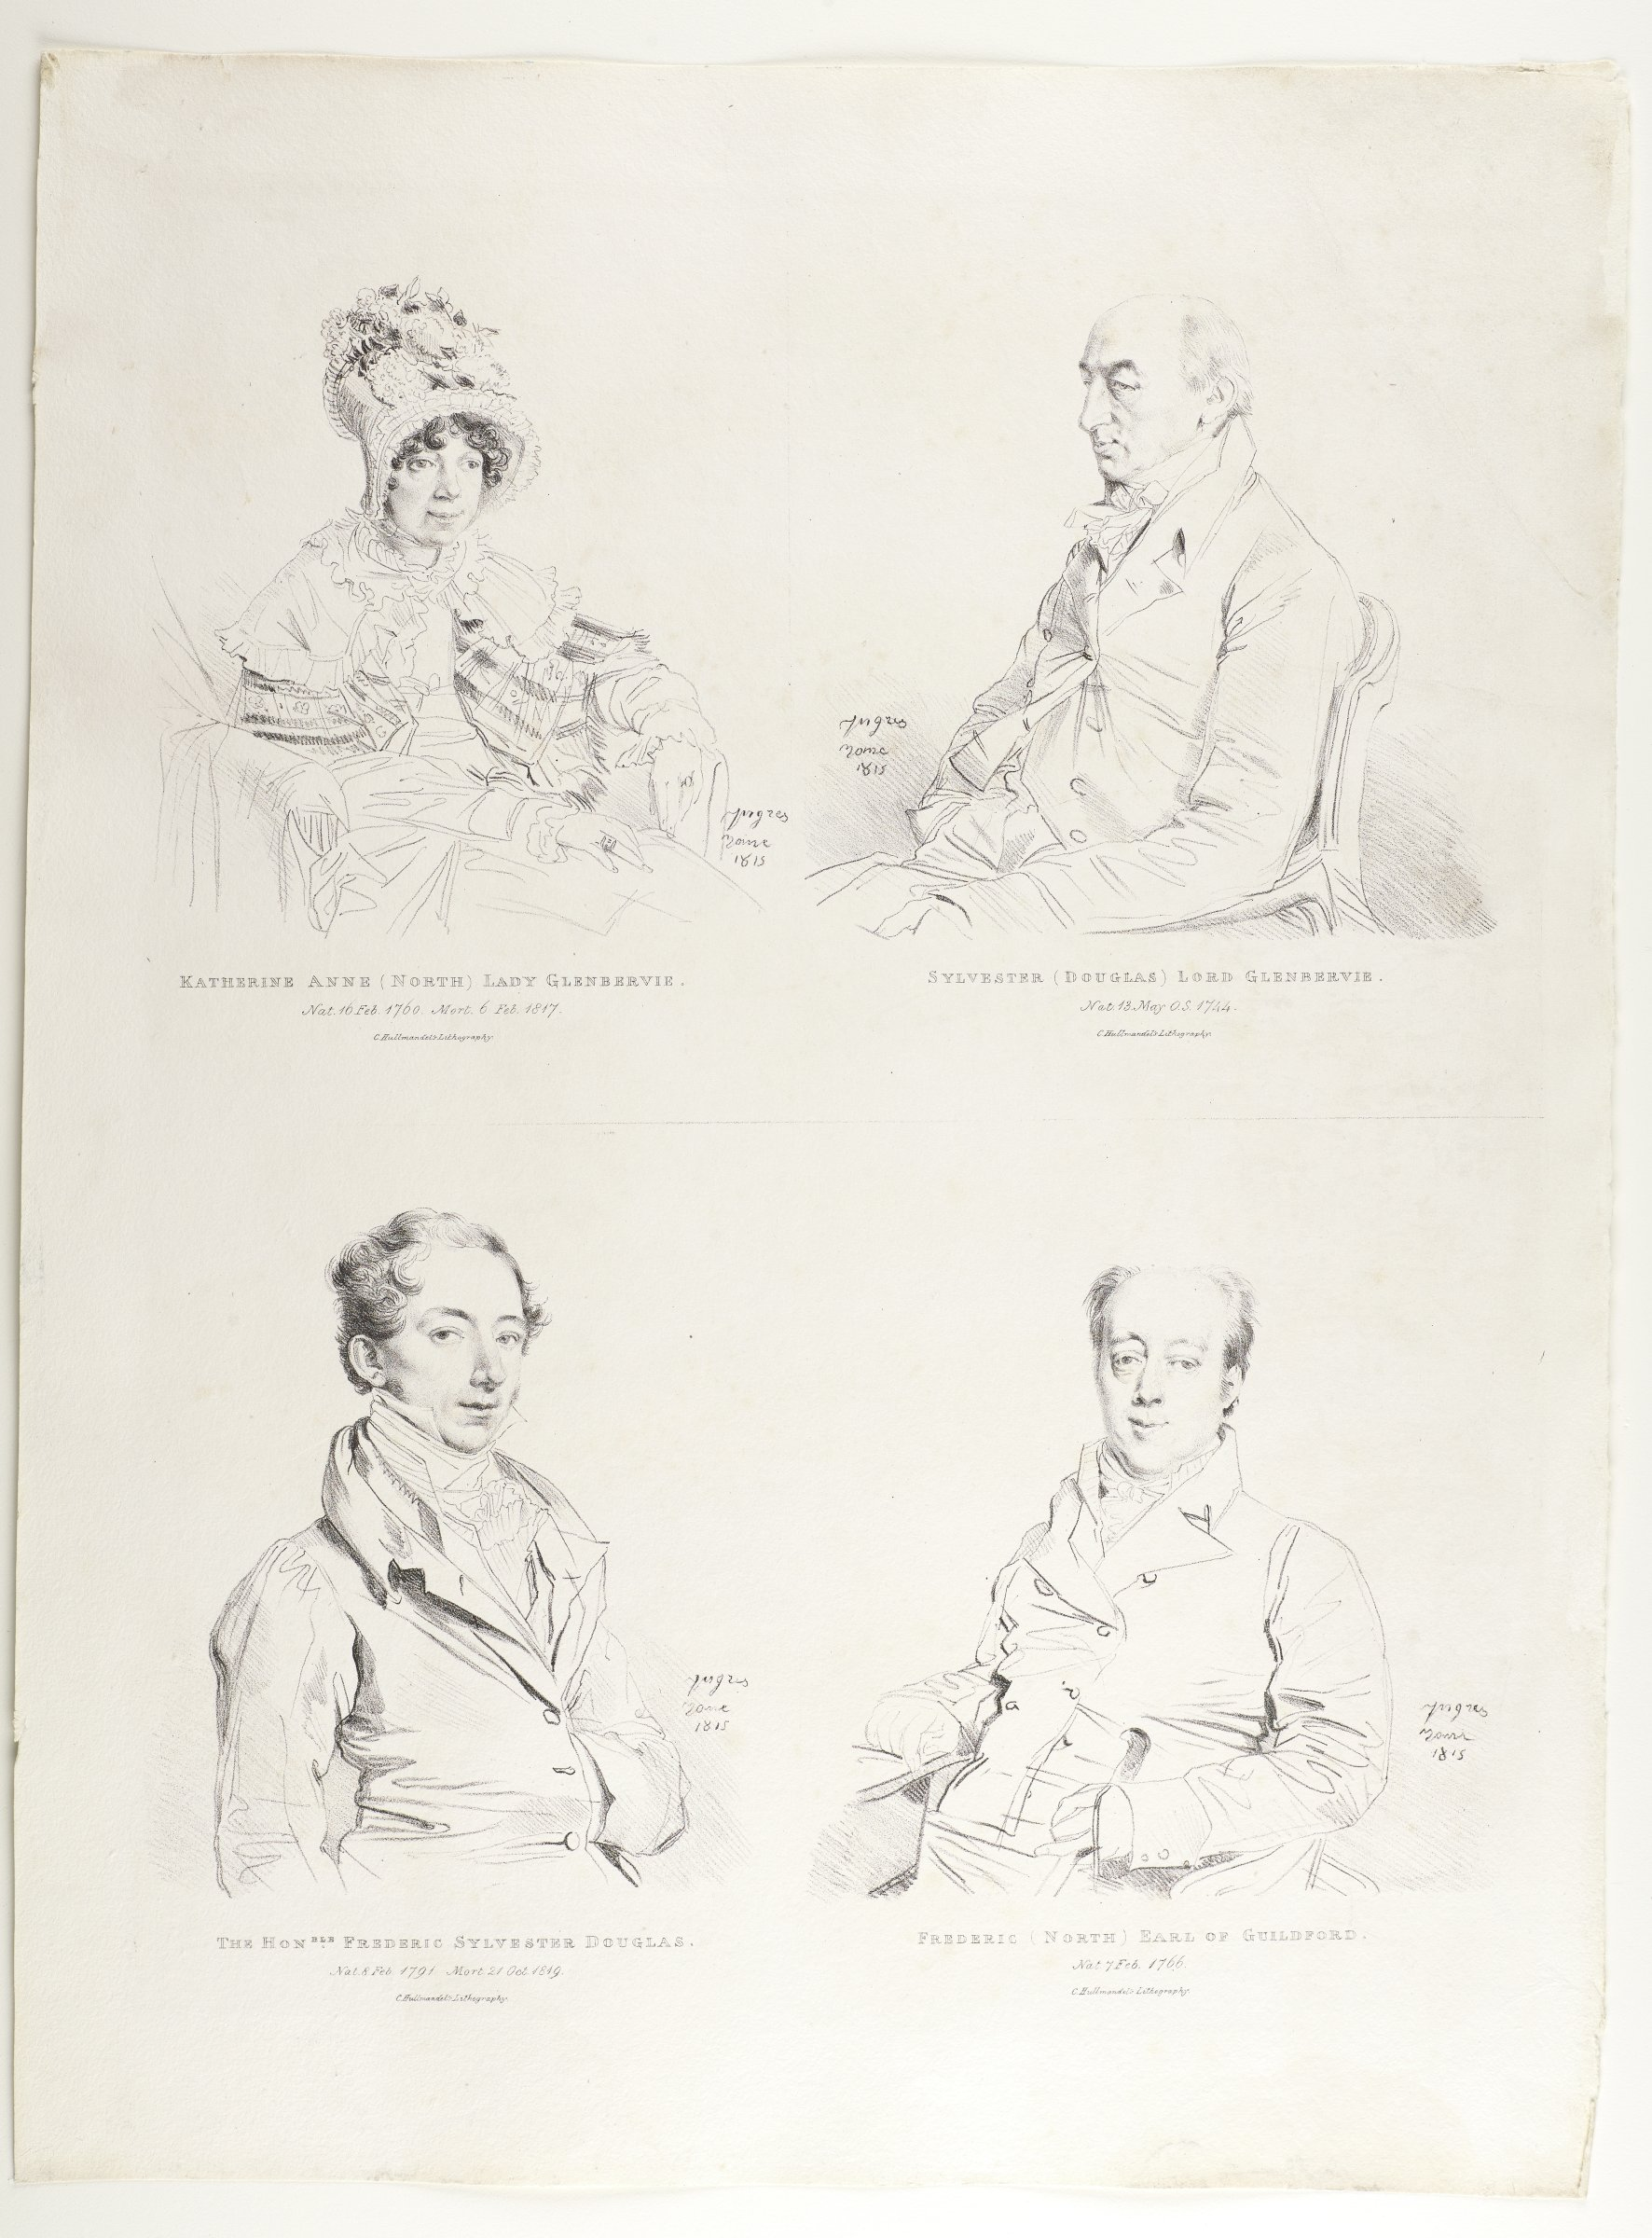 Study of four individual portraits containing heavily detailed faces with lesser detailed bodies.